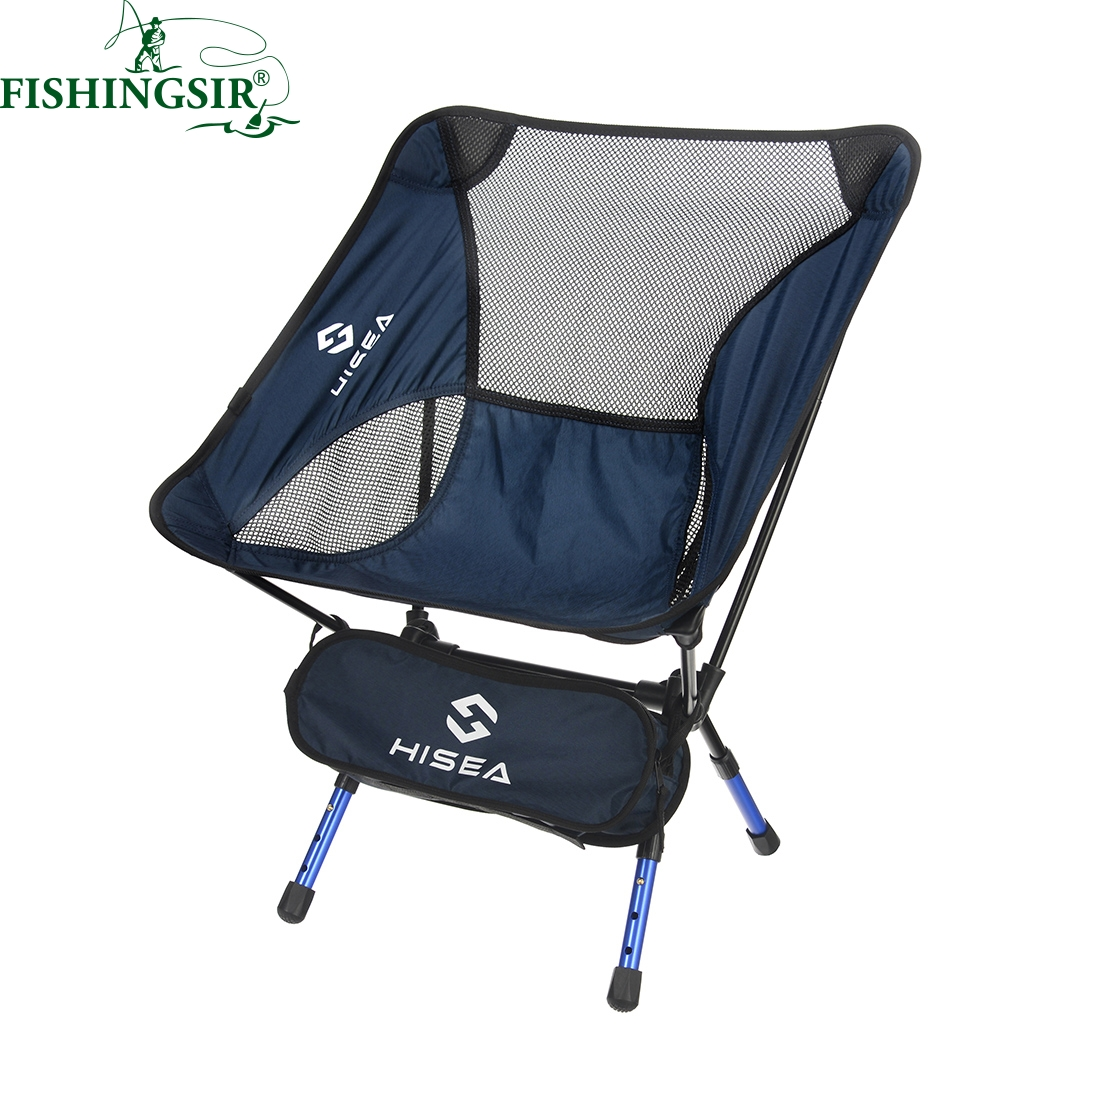 Adjustable hunting chair - Adjustable Lightweight Comfortable Portable Chair For Fishing Camping Picnic Travel Hunting Hiking Climbing Bbq Picnic